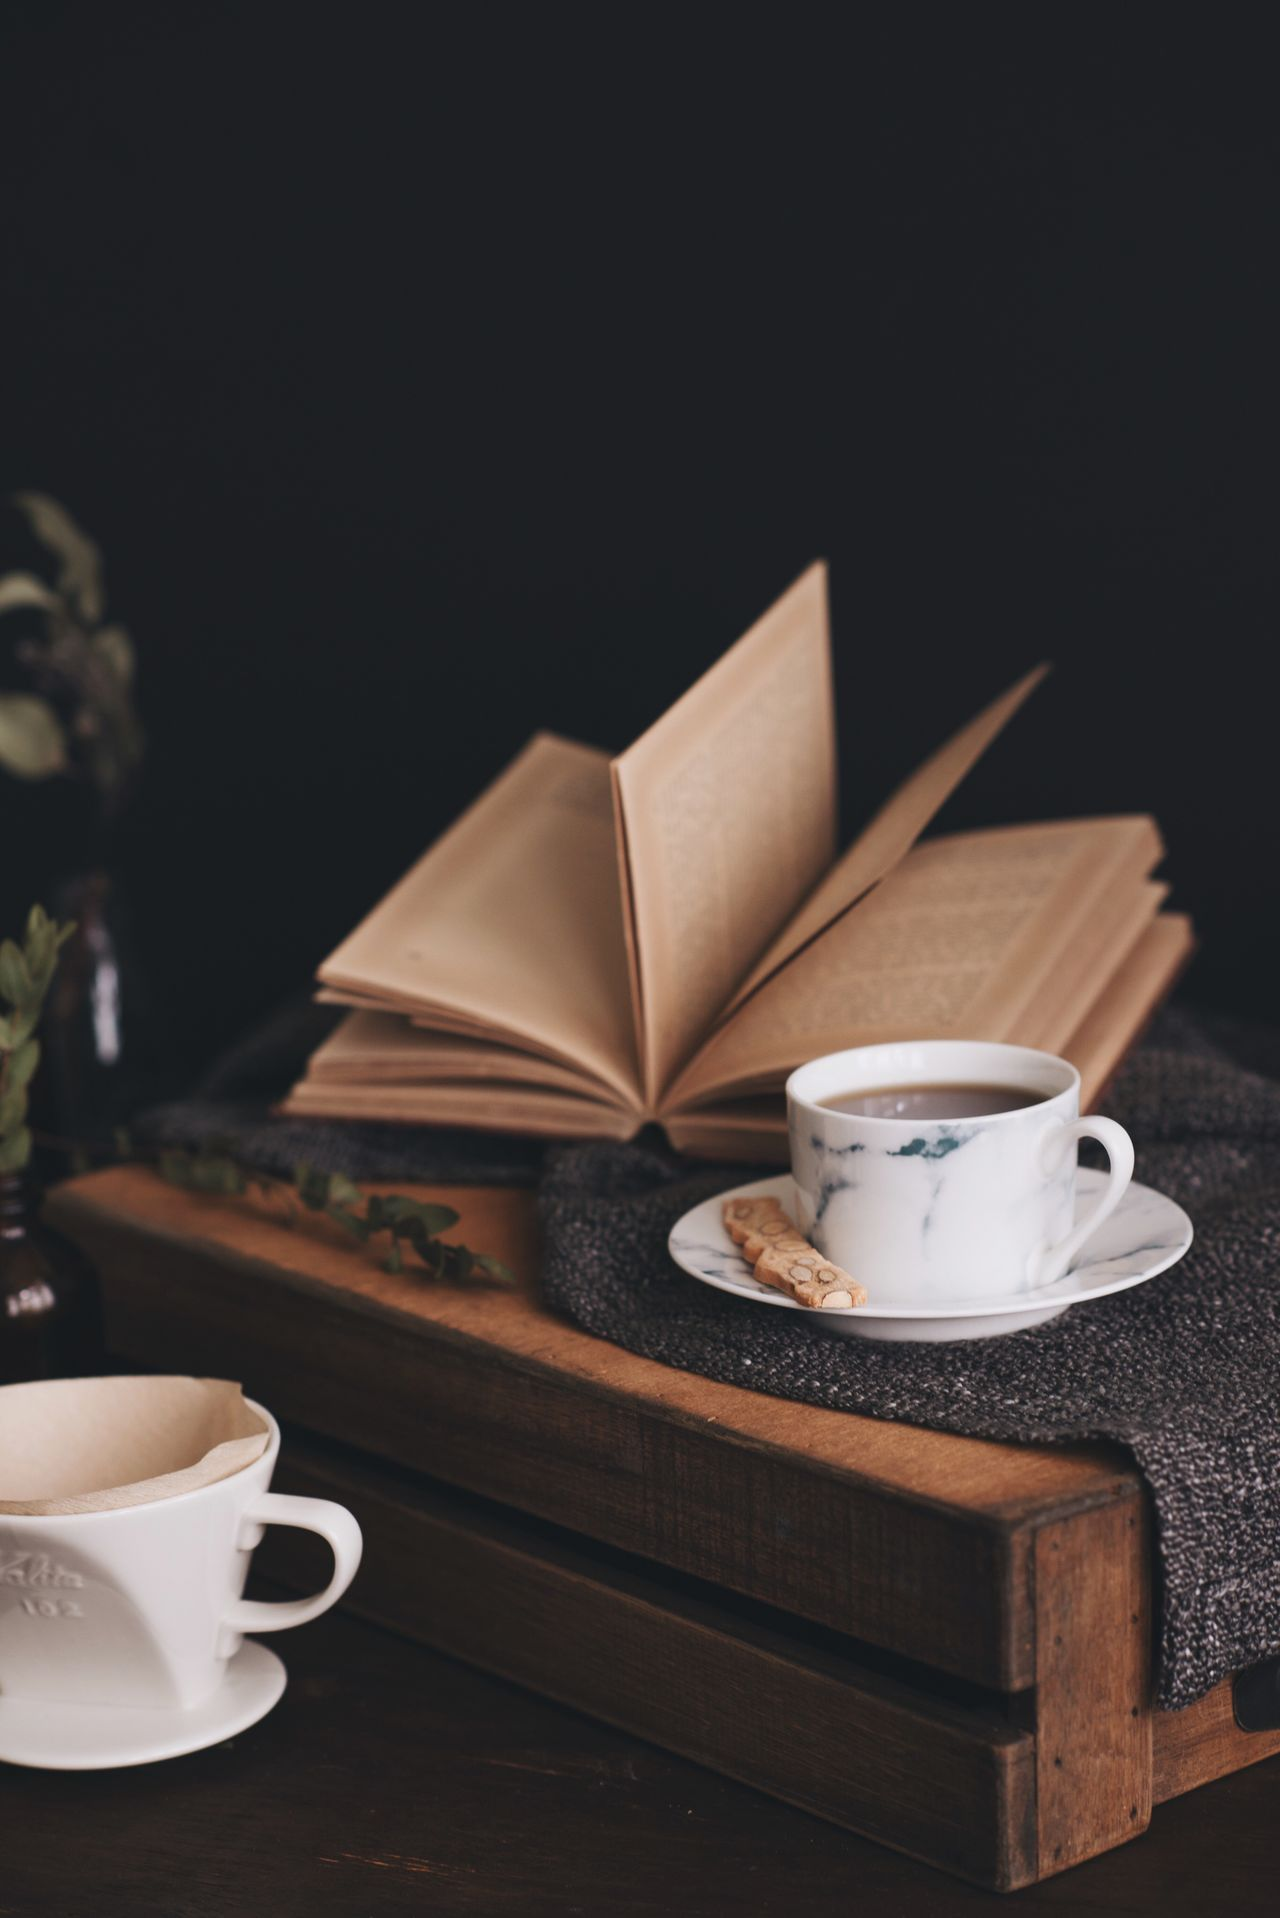 Cozy Cozycorner Alone Time Books Coffee Pursuepretty Mornings Morningslikethese